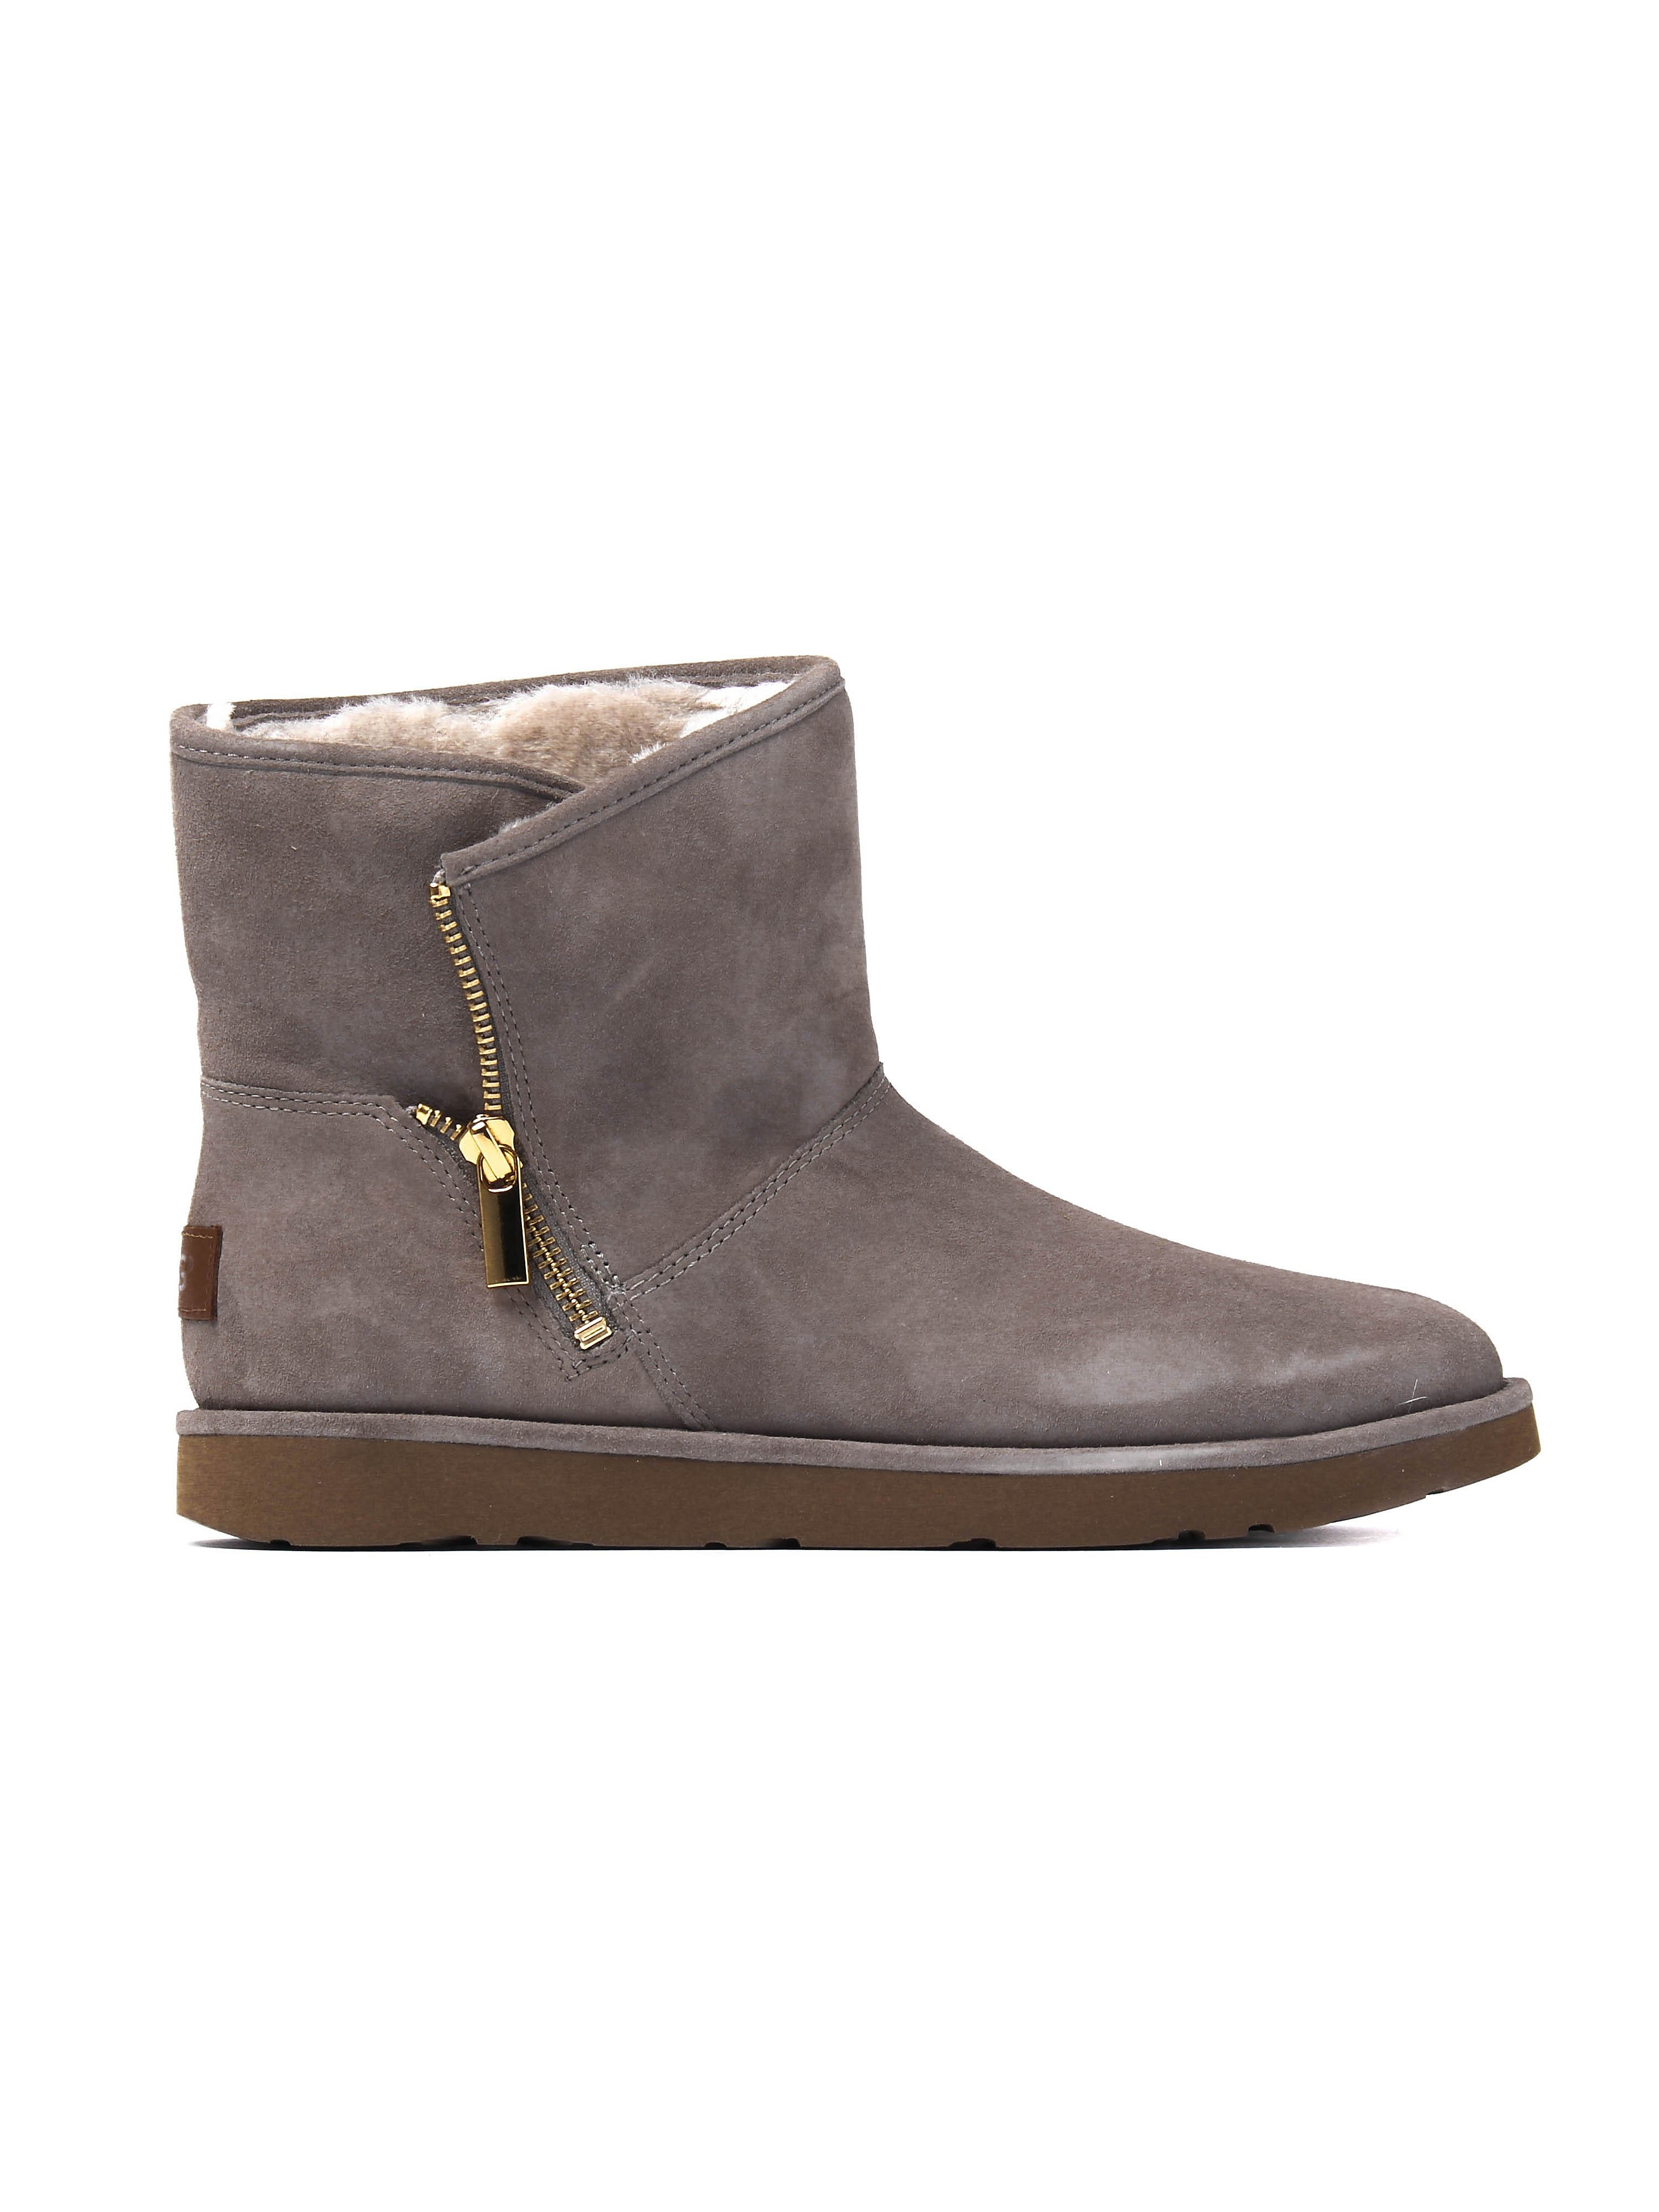 UGG Women's Kip Mid Boots - Clay Suede